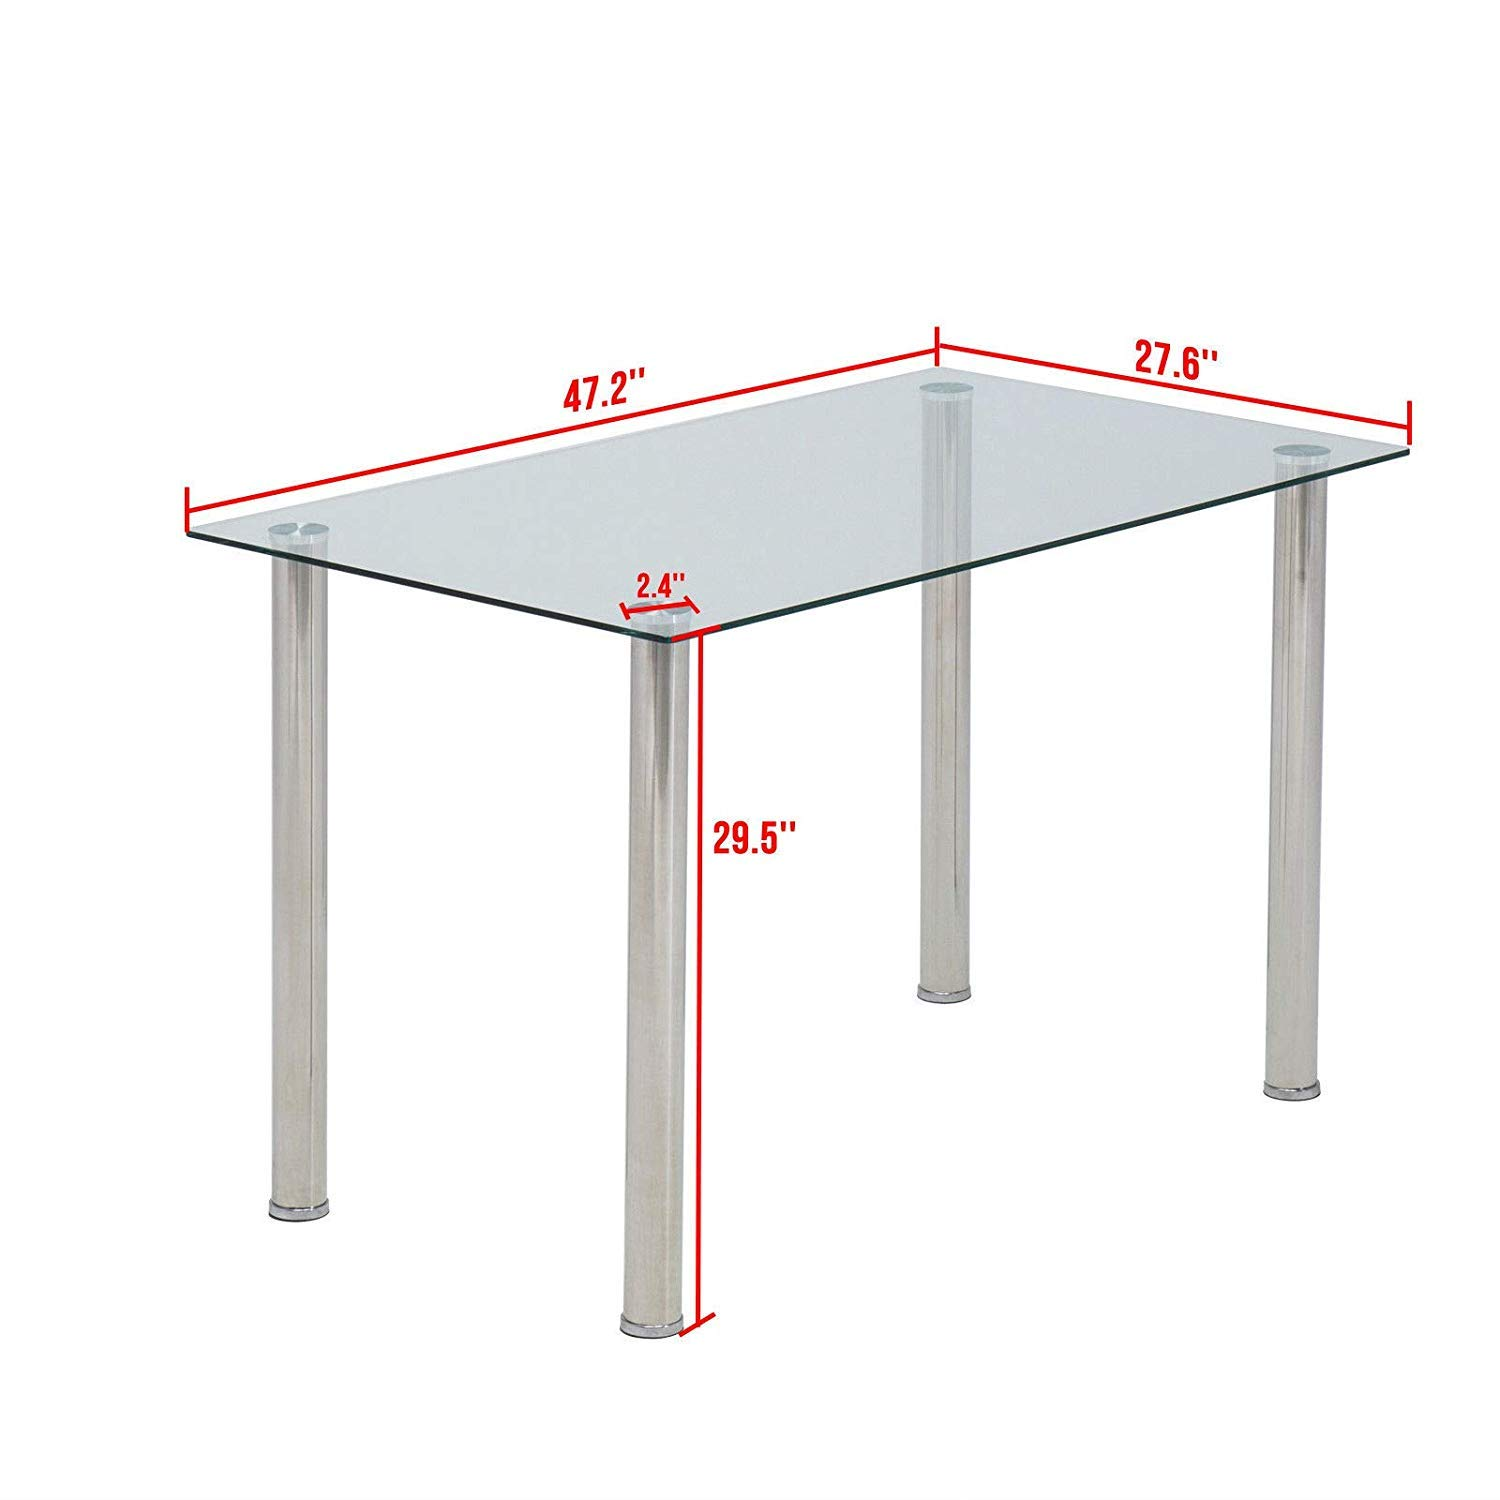 Mecor Dining Table Modern Minimallist Glass Kitchen Table Rectangular Transparent Metal Legs 47IN for 4/6 Persons,Clear